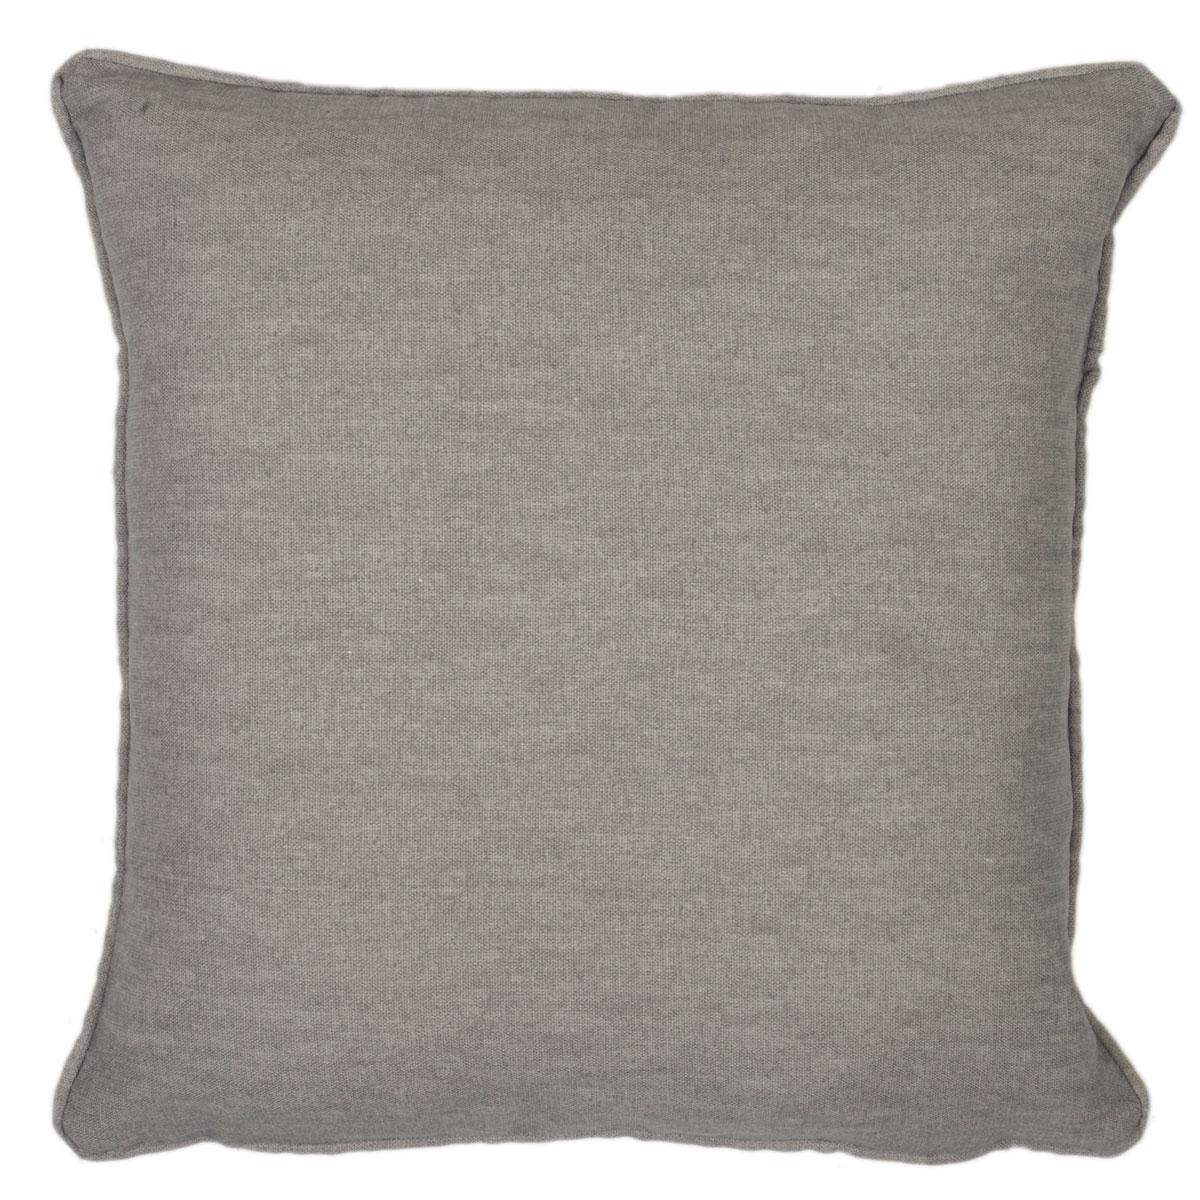 J Rosenthal Cushions And Throws Sorbonne Filled Cushion Charcoal Picture